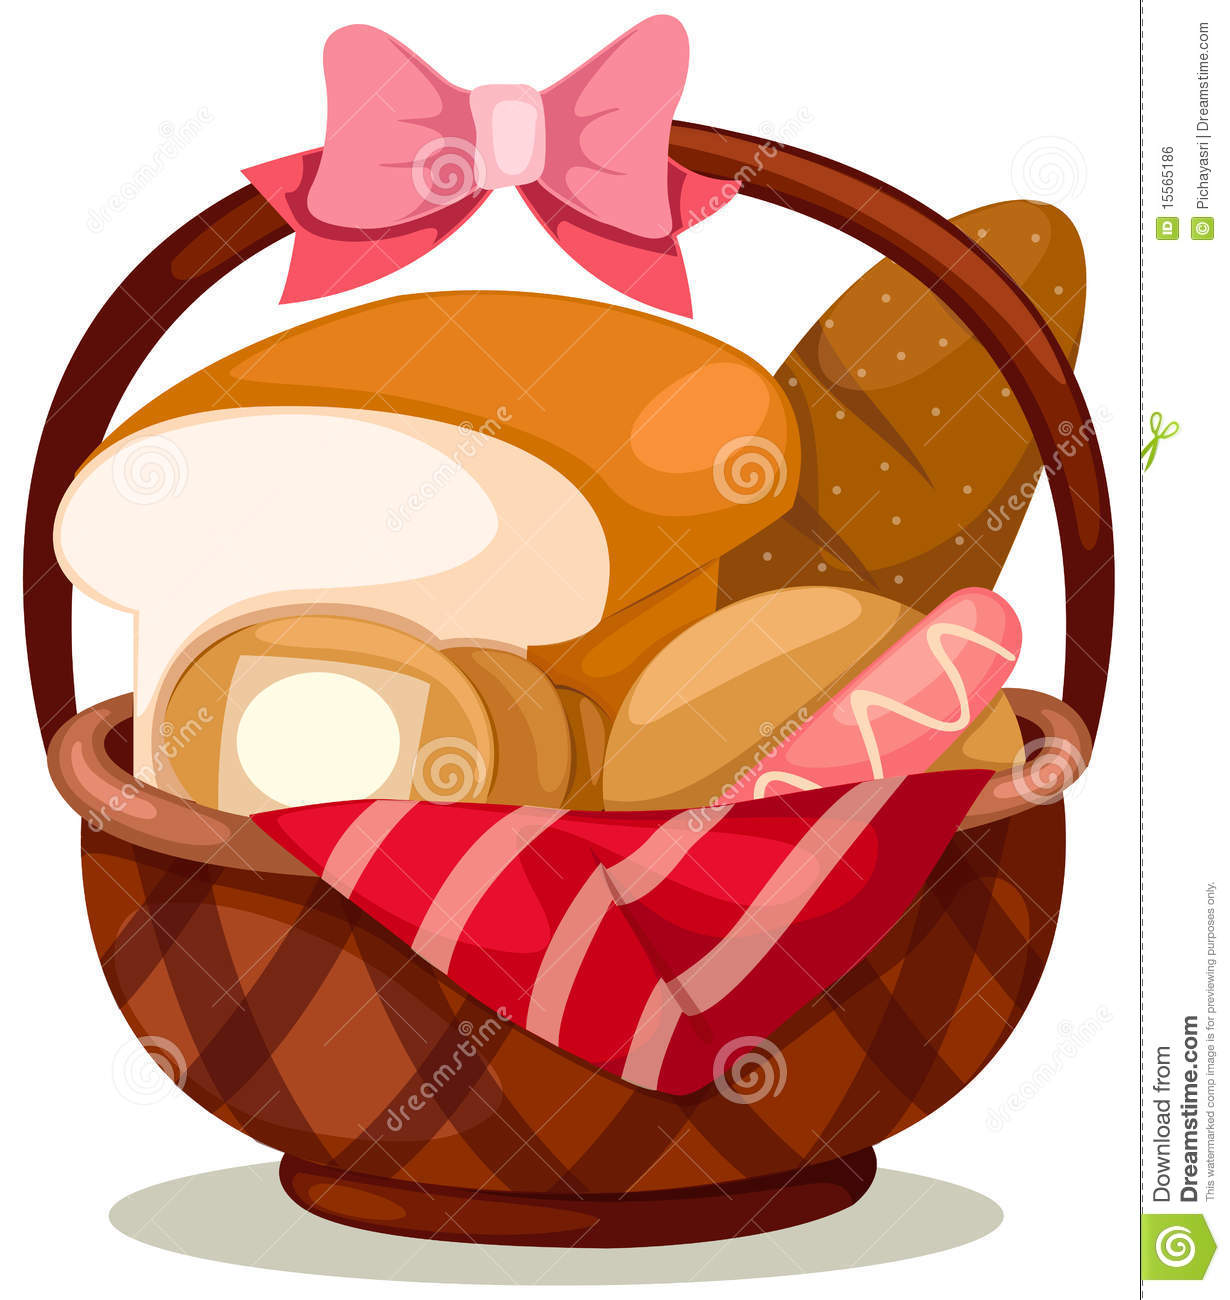 Basket Of Bread Royalty Free Stock Image Image 15565186